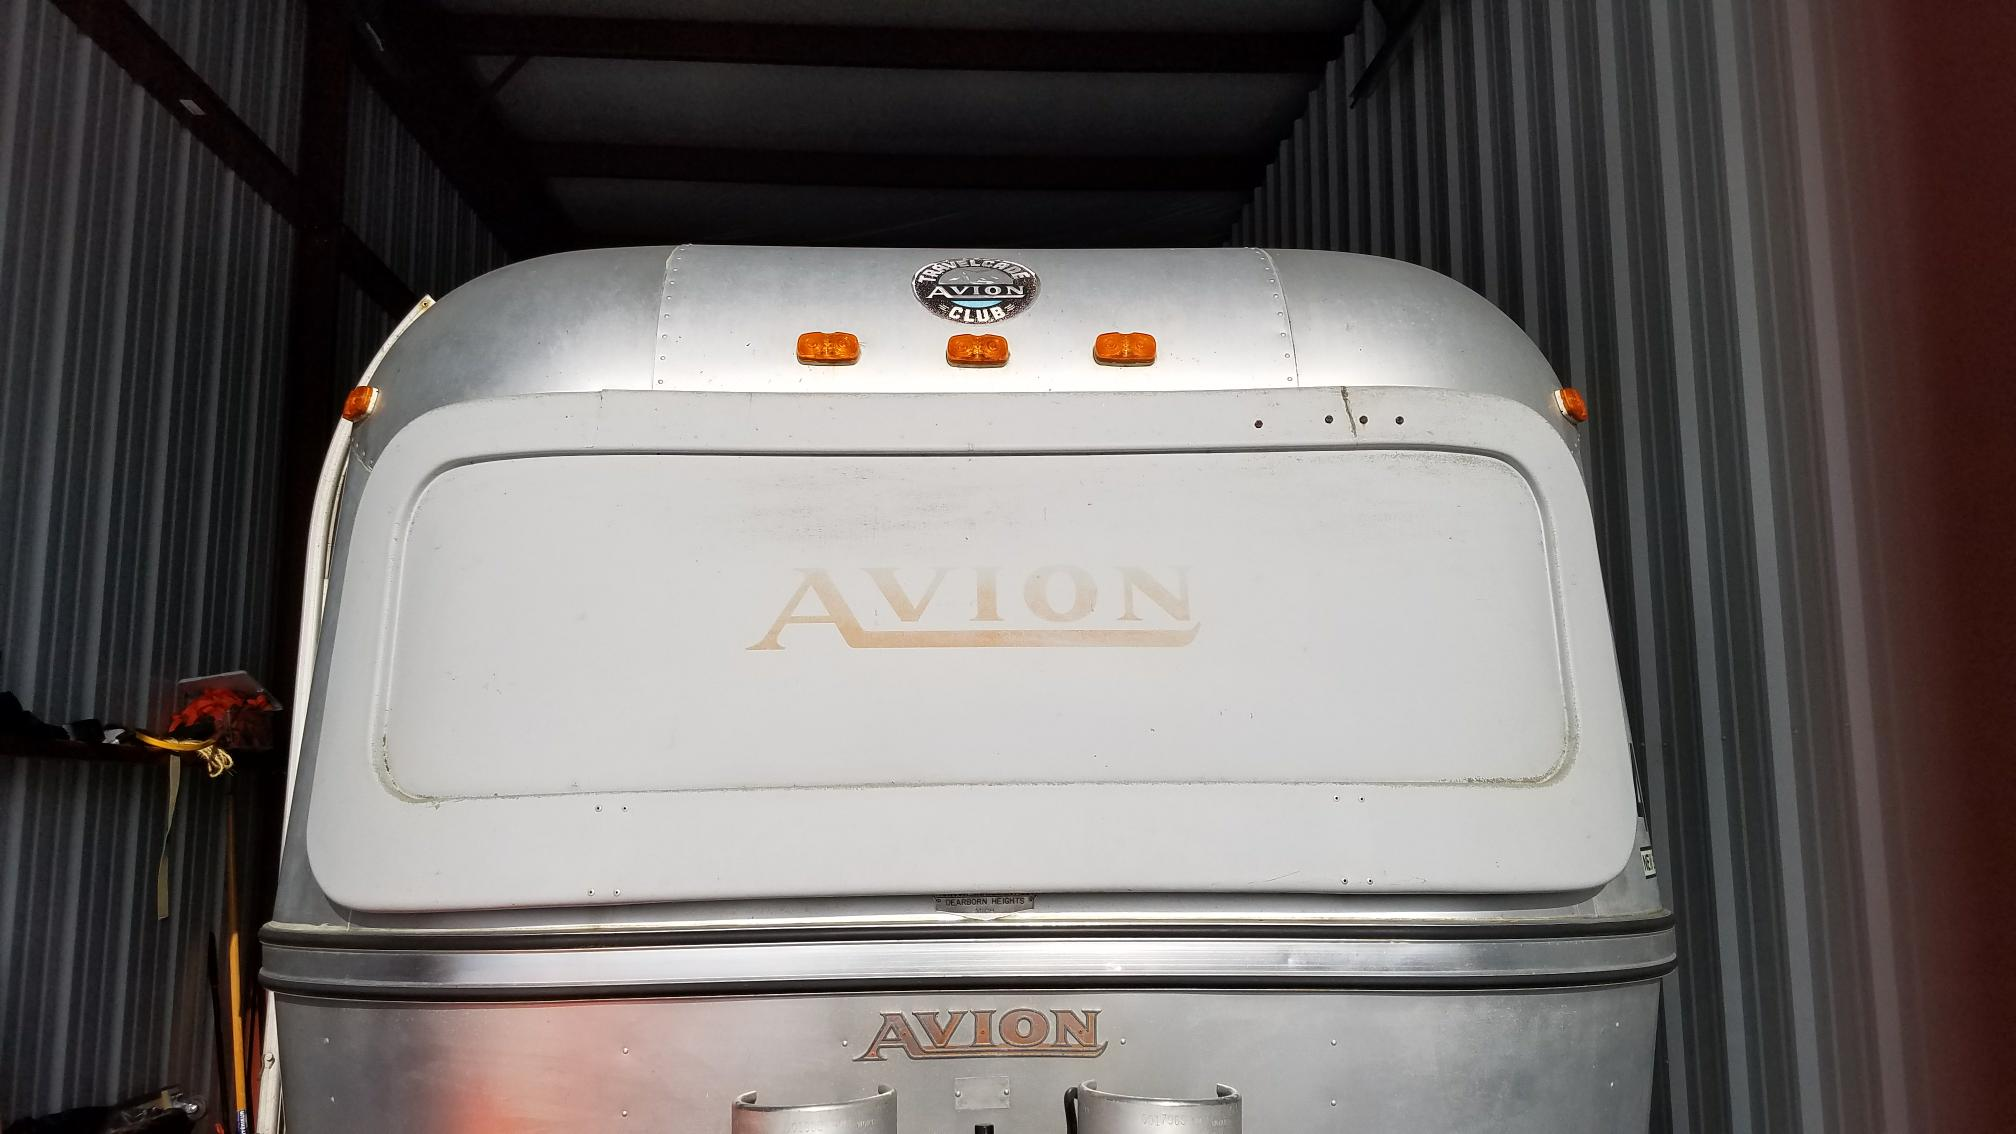 our 73 Avion nose, breadloaf style